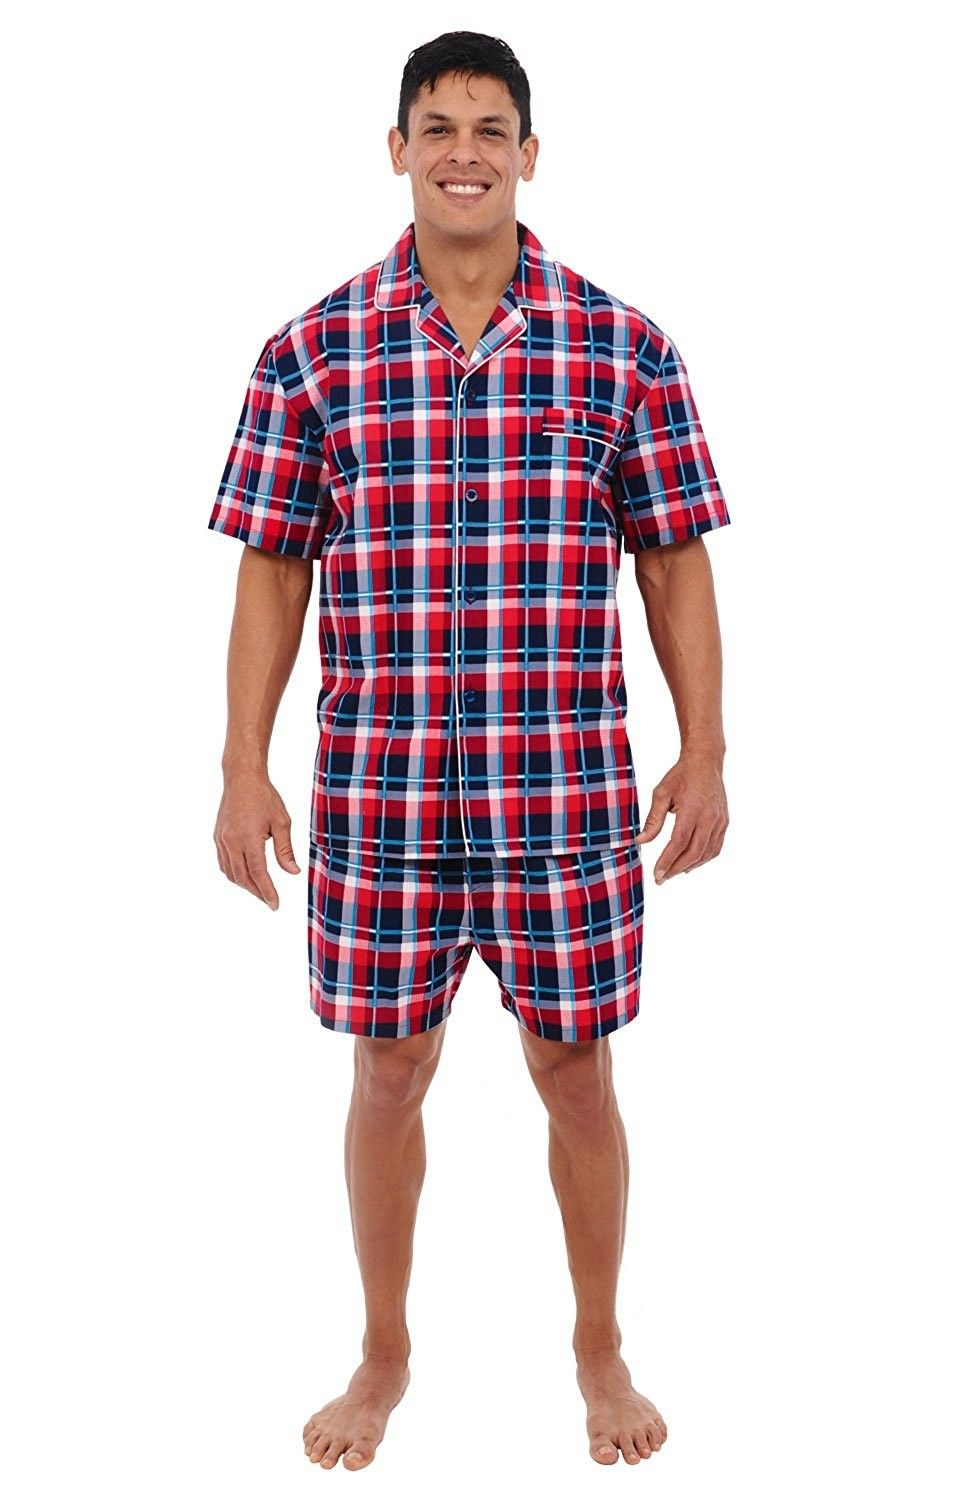 f82eec1f36 Mens Cotton Pajamas- Short Button-Down Woven PJ Set - Red Plaid With White  Piping - CJ12607FFXZ